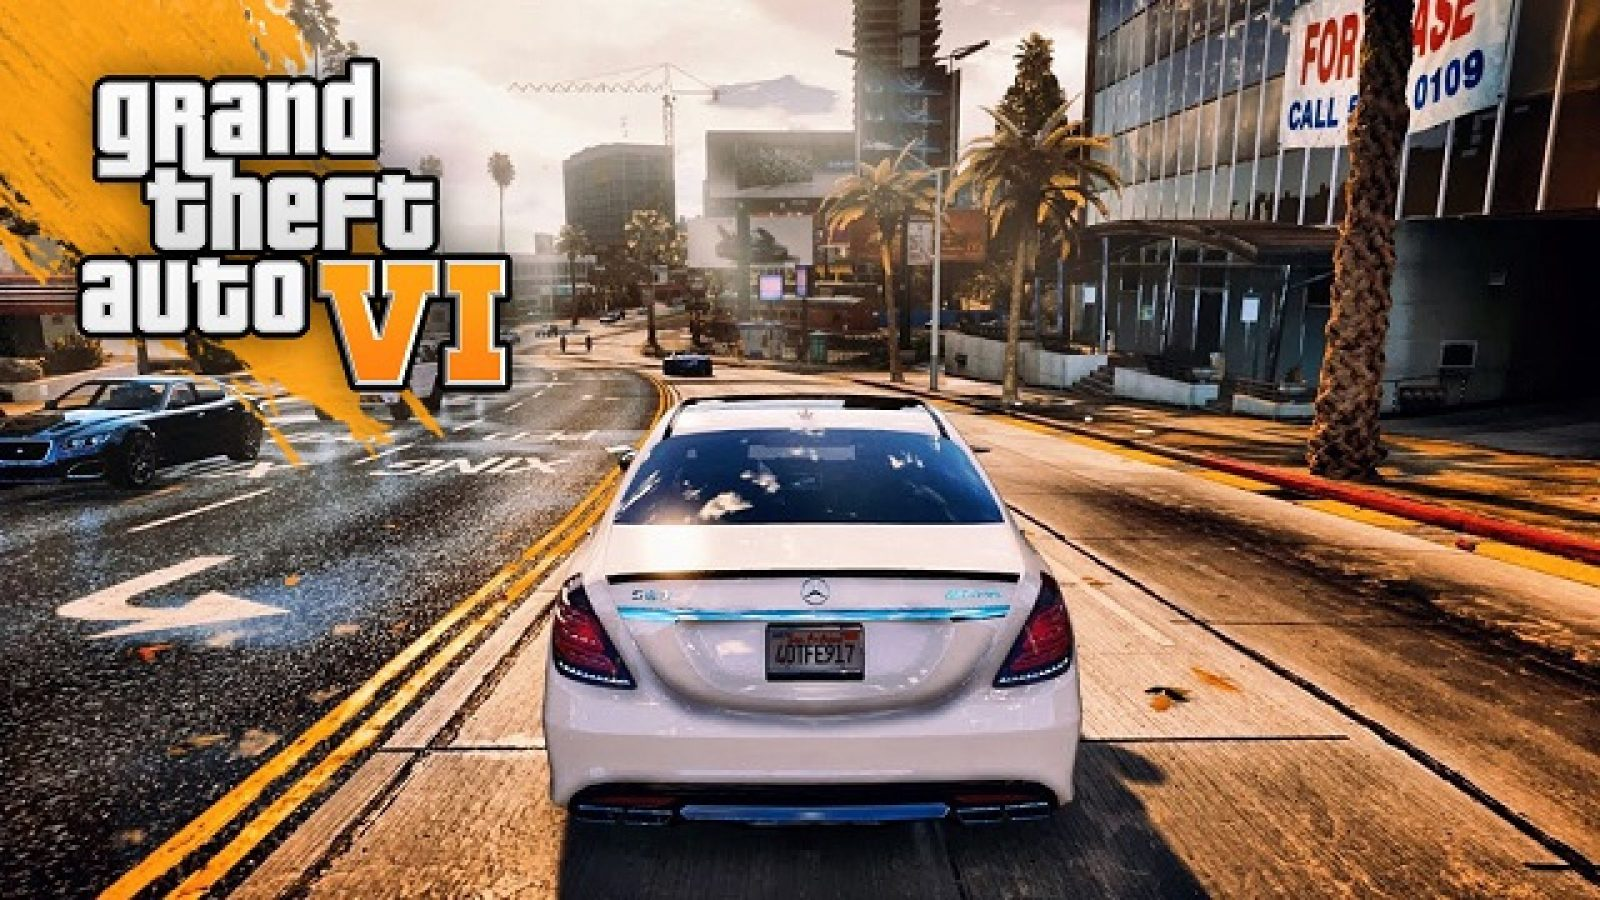 GTA 6 release updates bad news for PS4 and Xbox One Grand Theft Auto fans?